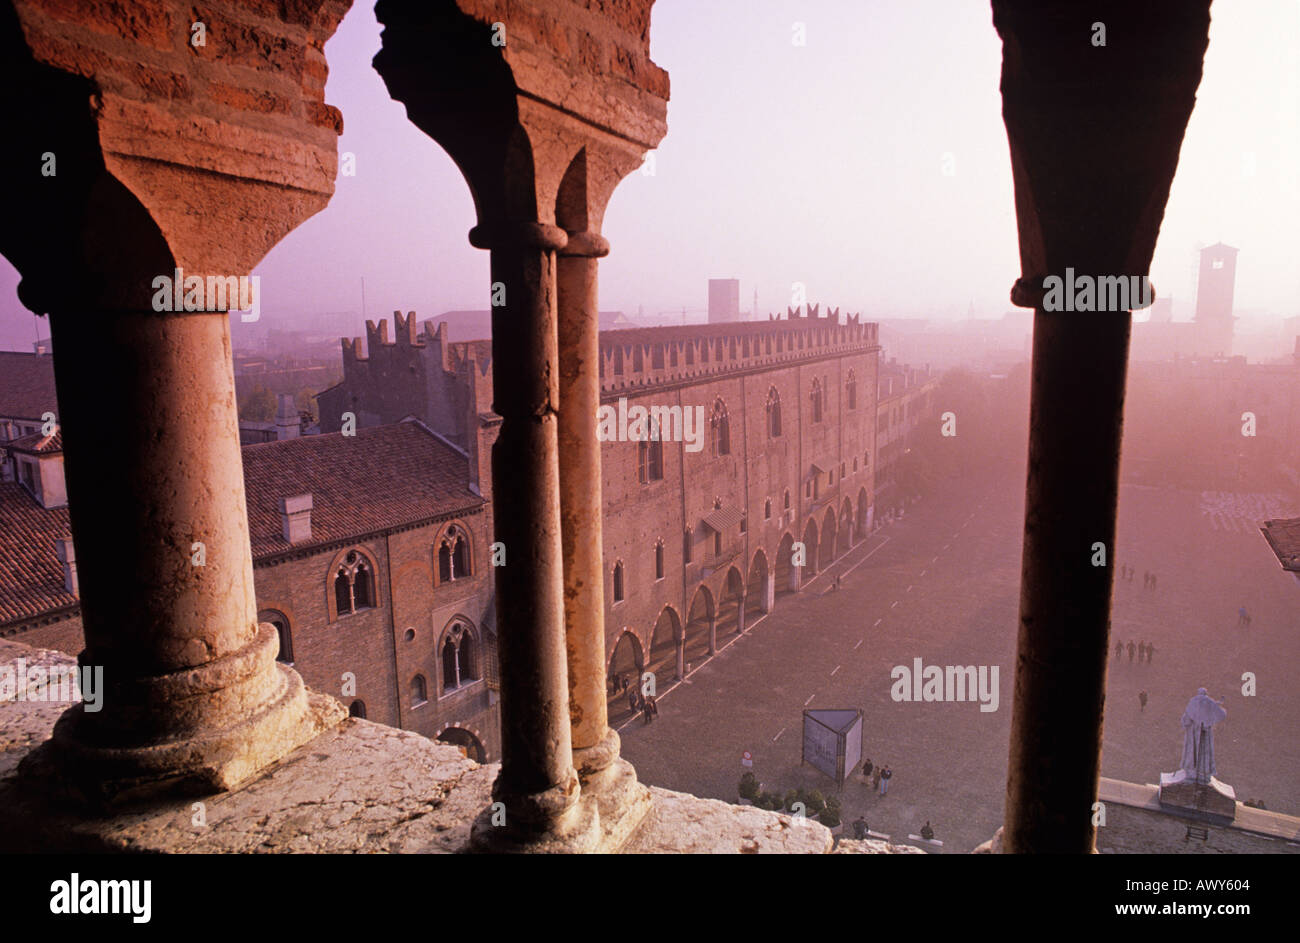 Palazzo Ducale Mantua Lombardy Italy - Stock Image